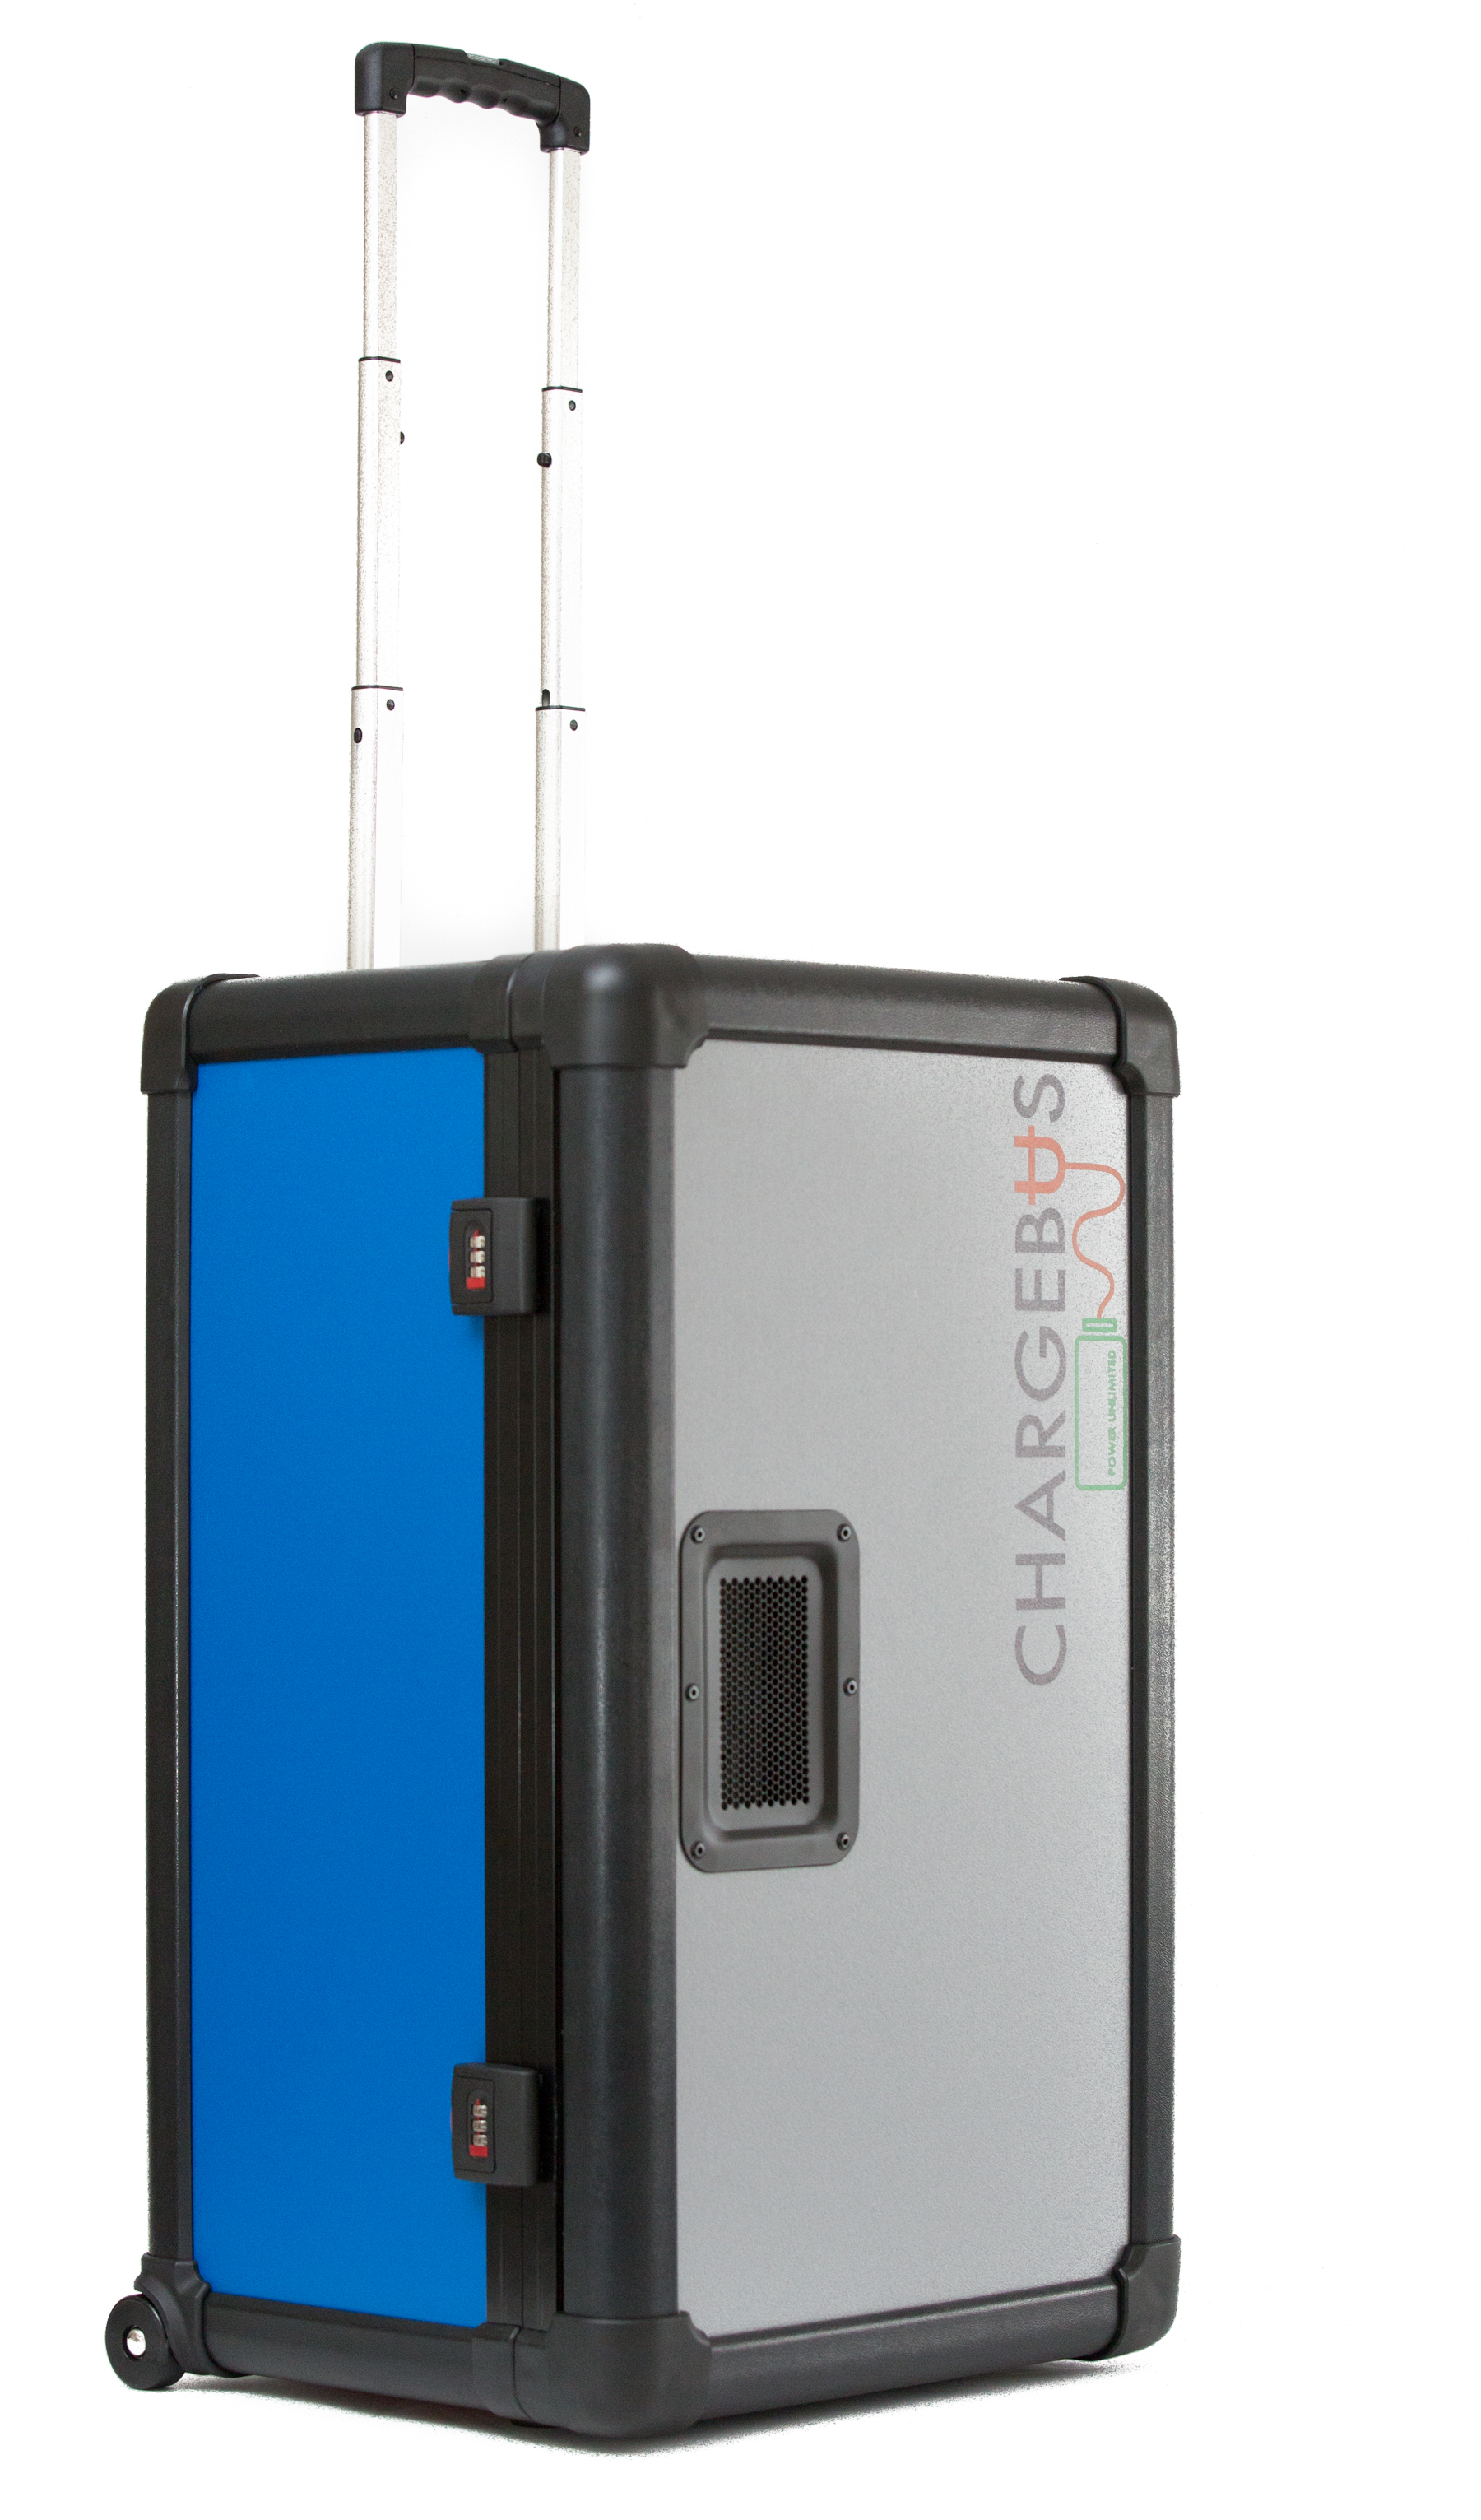 Chargebus 1610 EXOcase